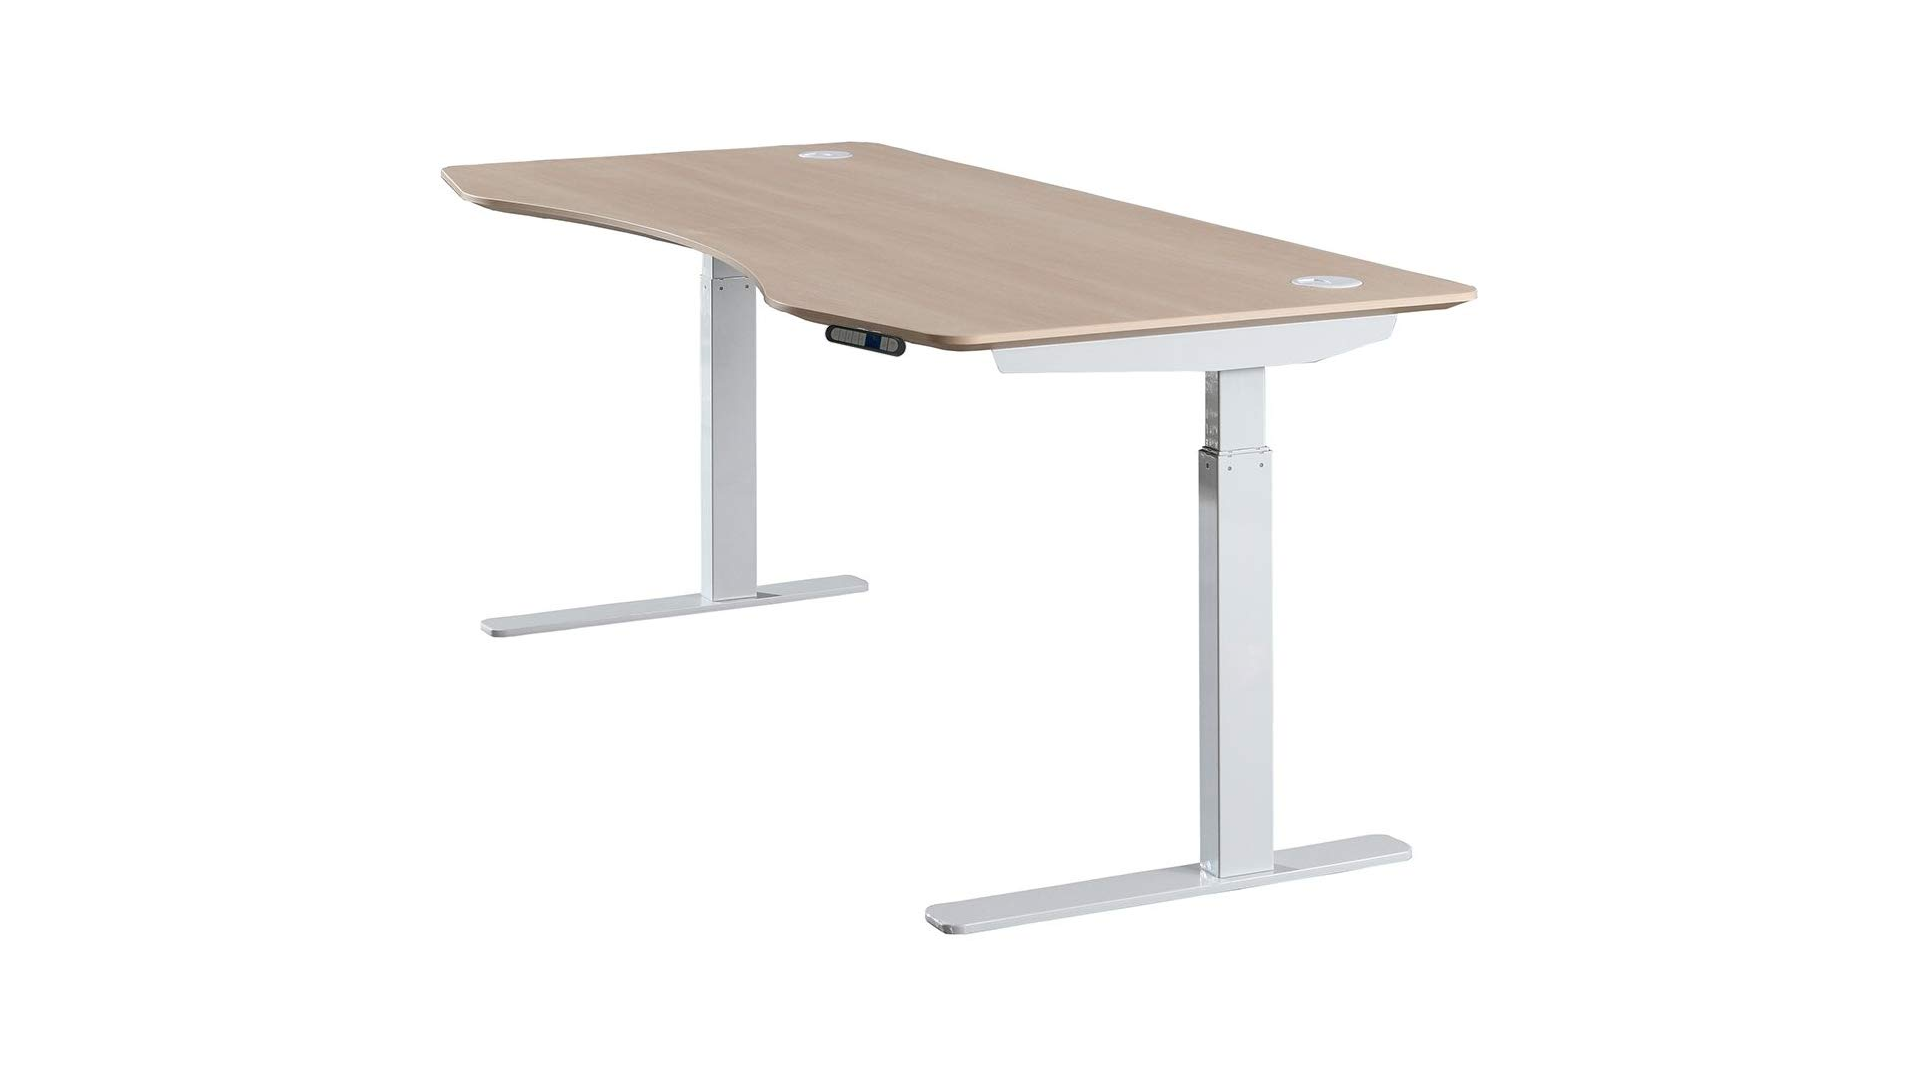 A photo of the Apexdesk adjustable standing desk.